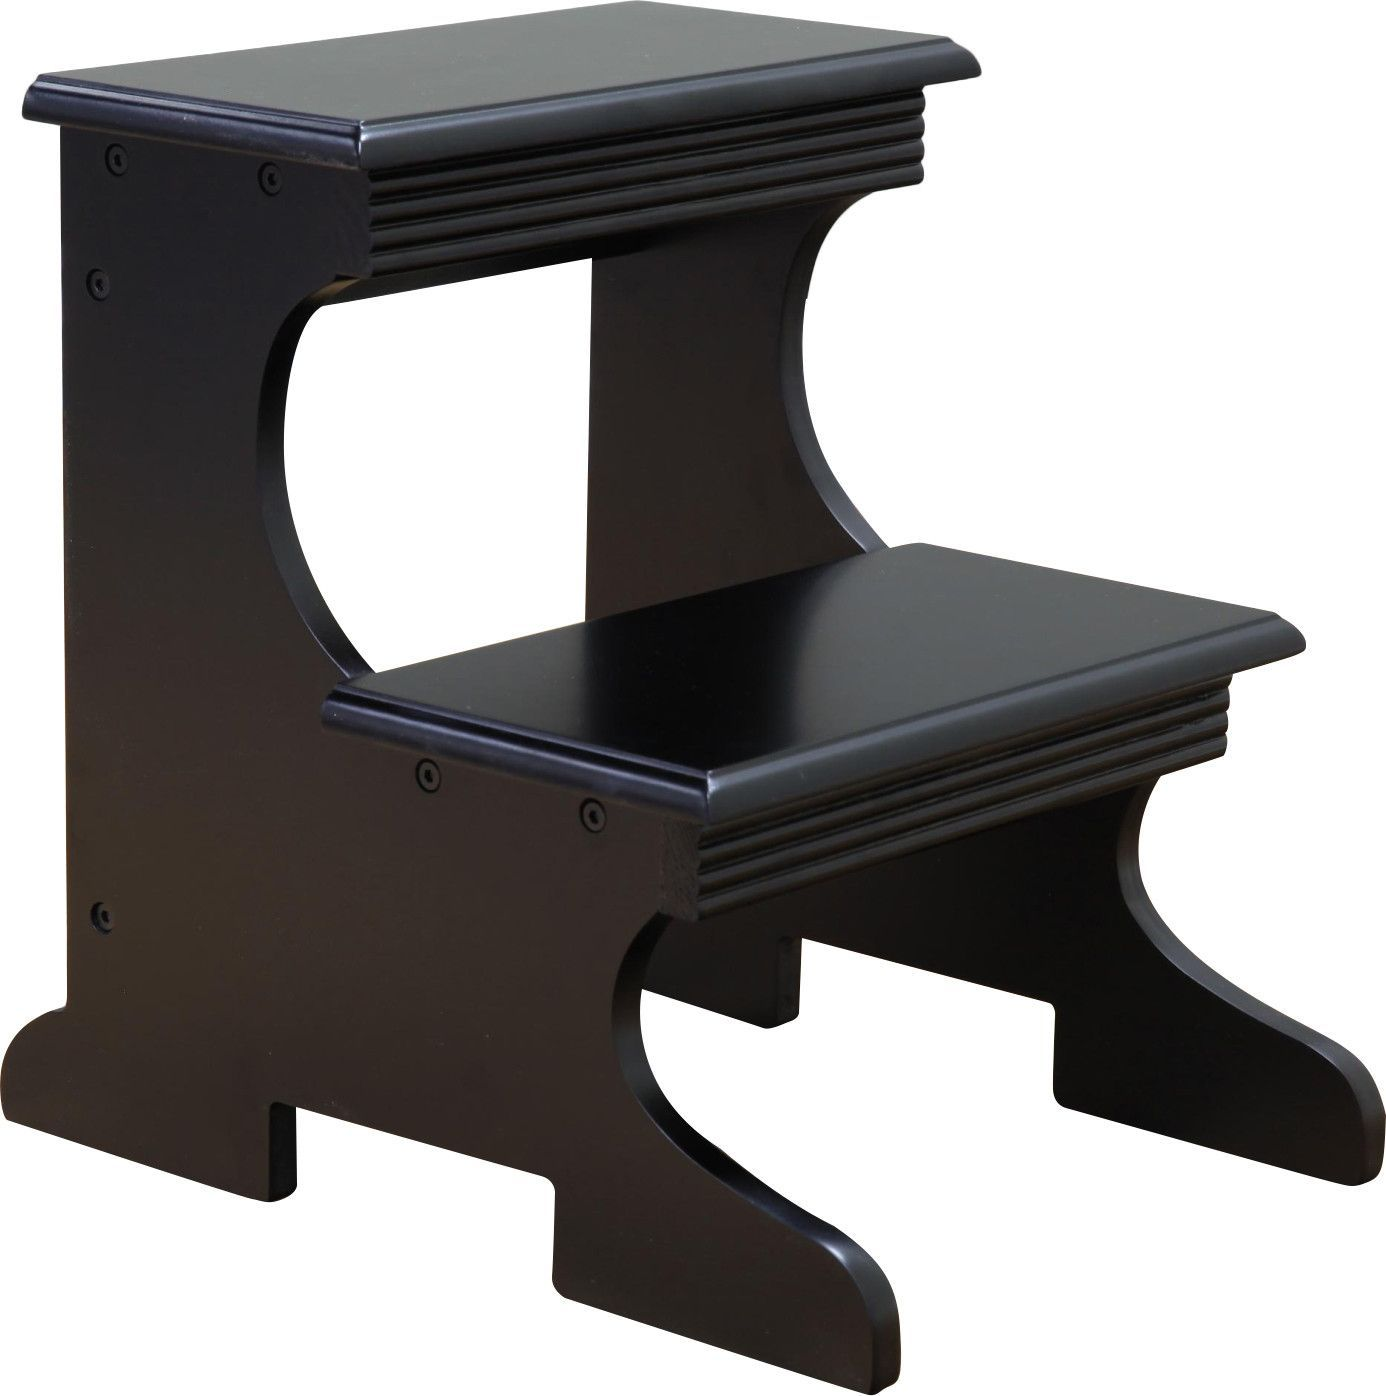 Fabulous 2 Step Wood Step Stool Products Stool Wooden Steps Machost Co Dining Chair Design Ideas Machostcouk